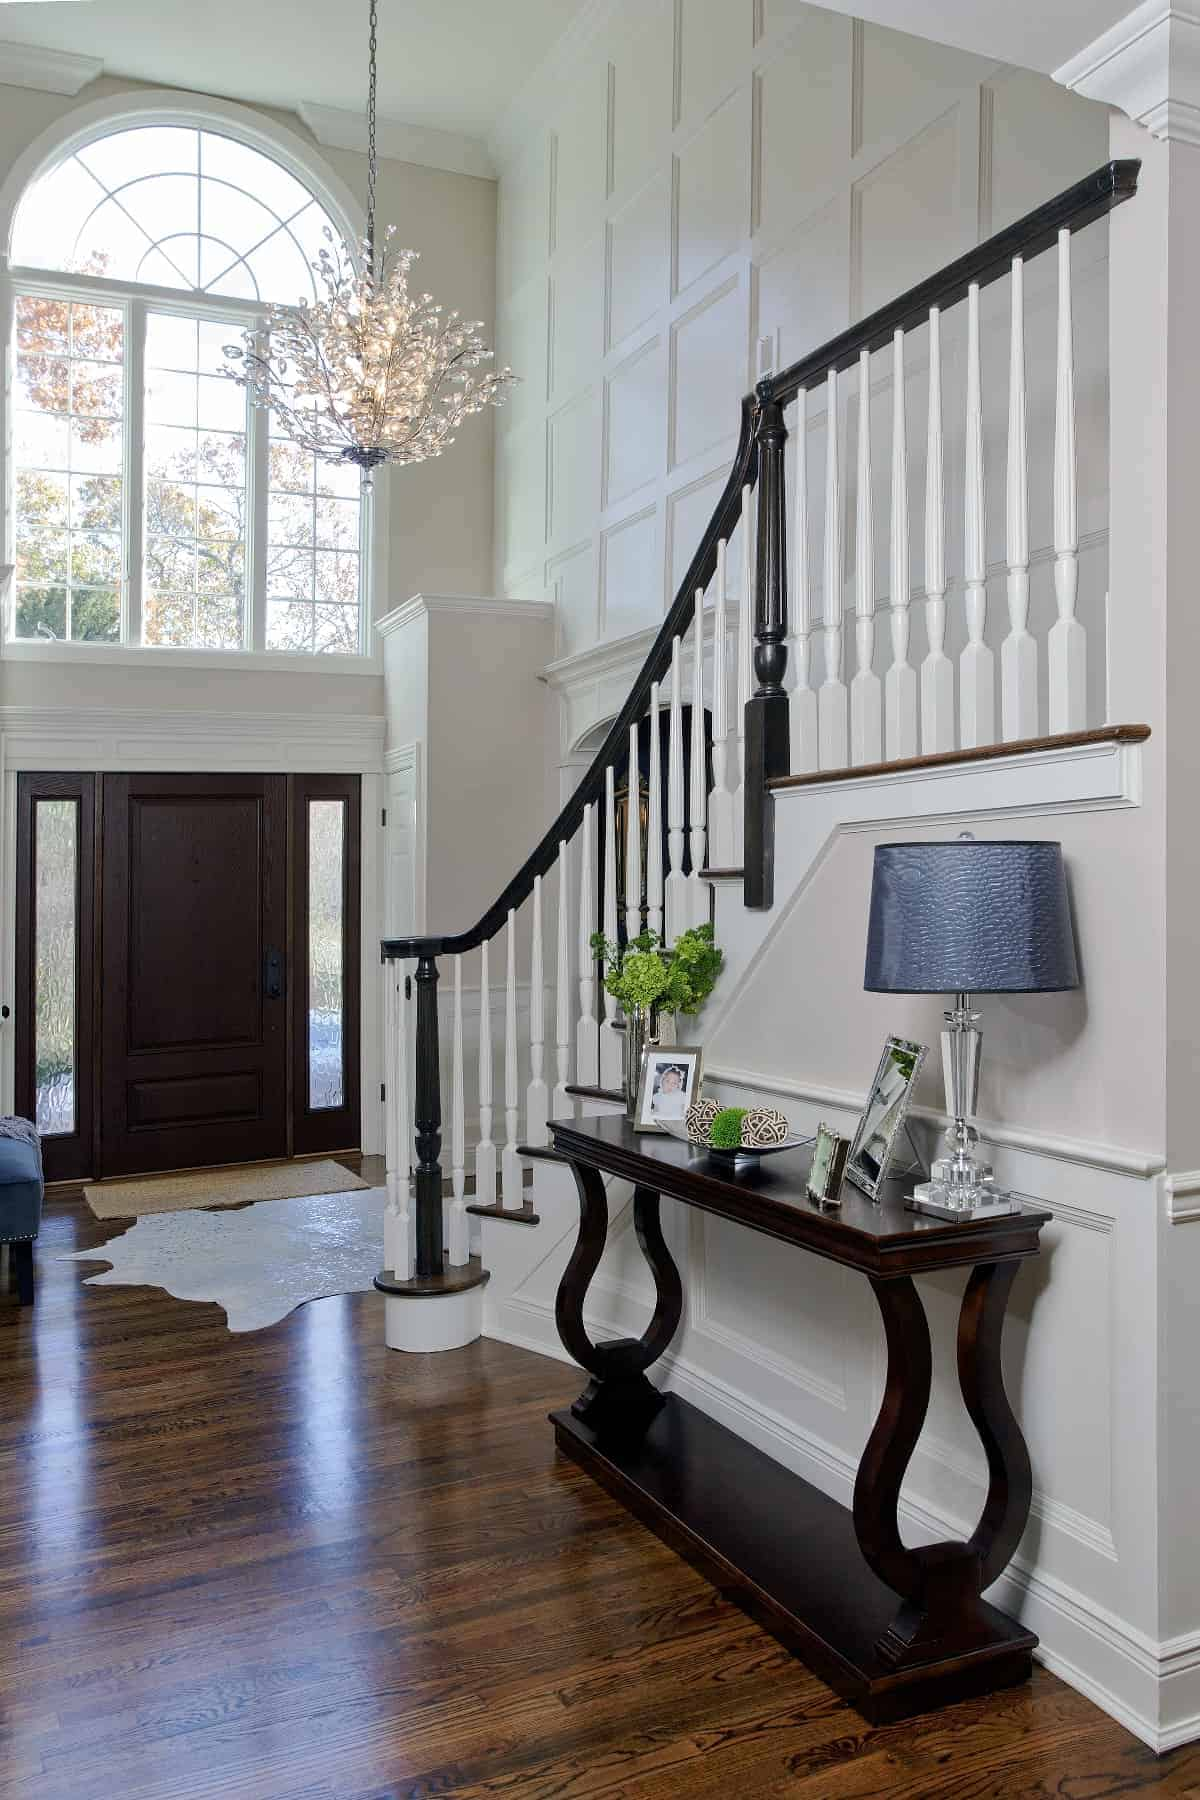 Office Foyer Images : Entry foyer interiors by just design